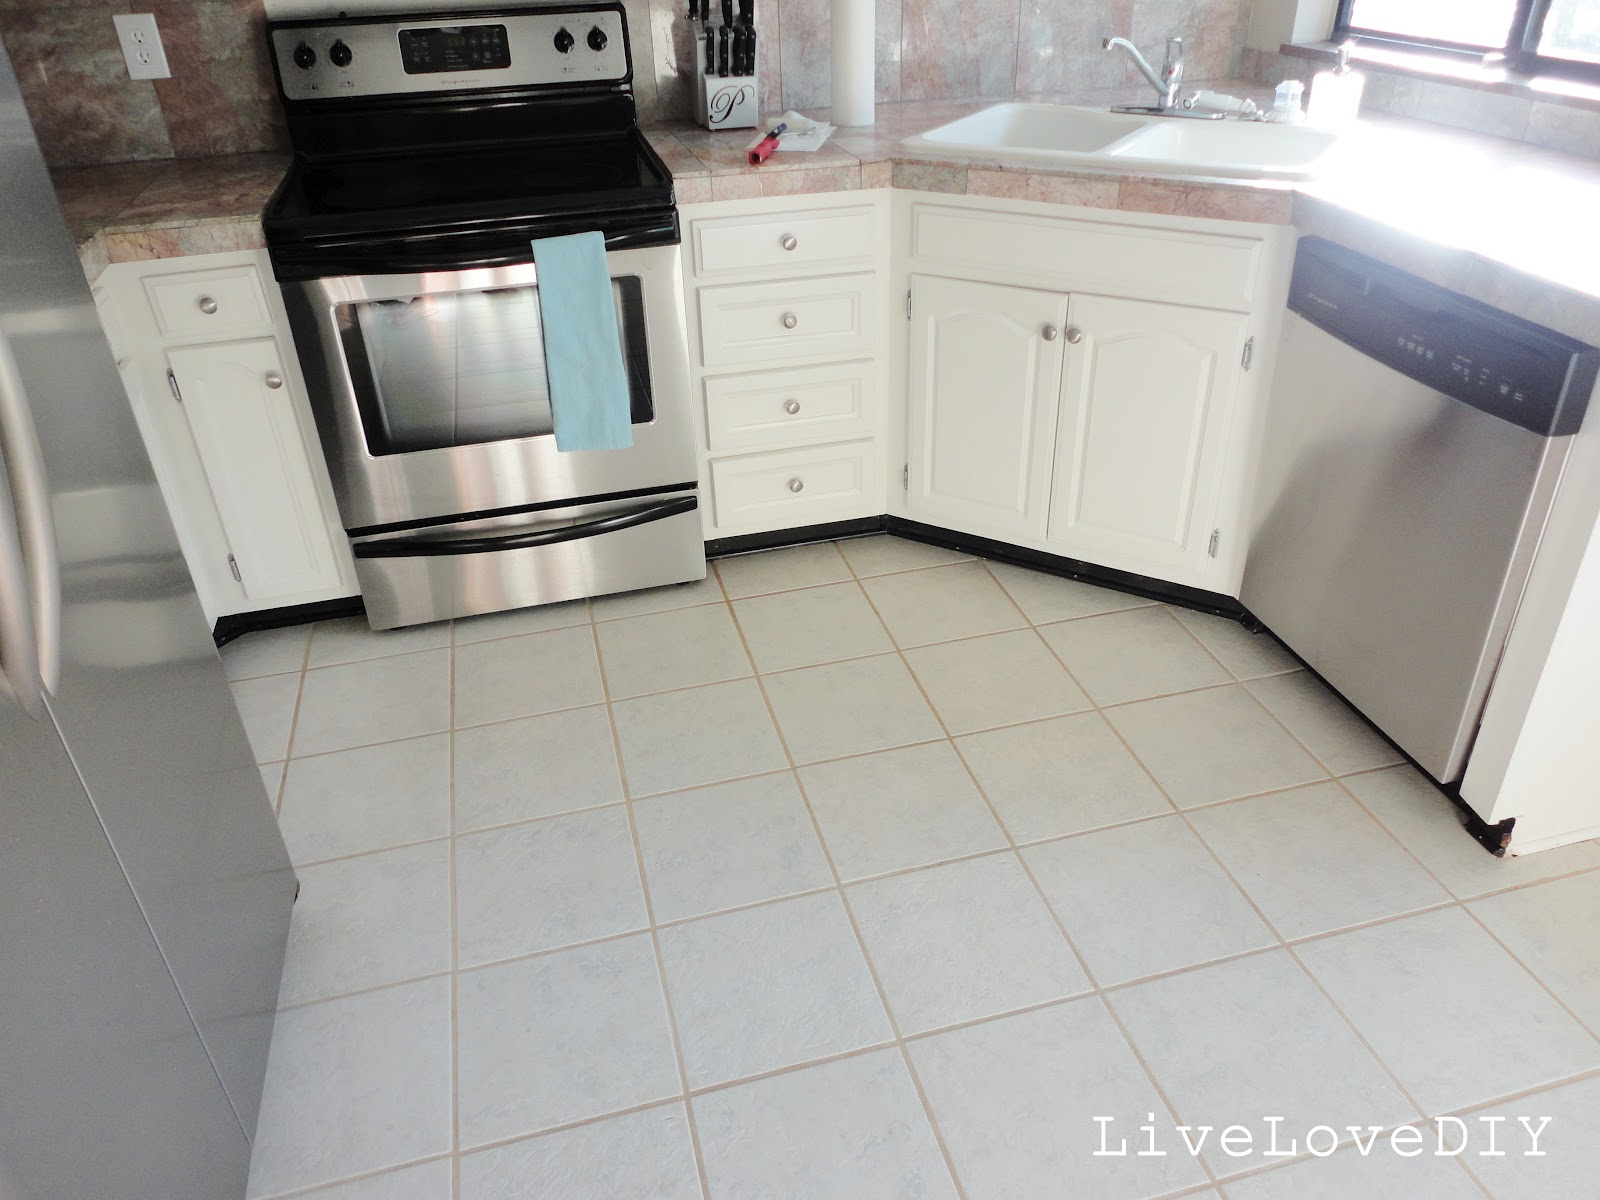 Livelovediy how to restore dirty tile grout how to restore dirty tile grout dailygadgetfo Choice Image